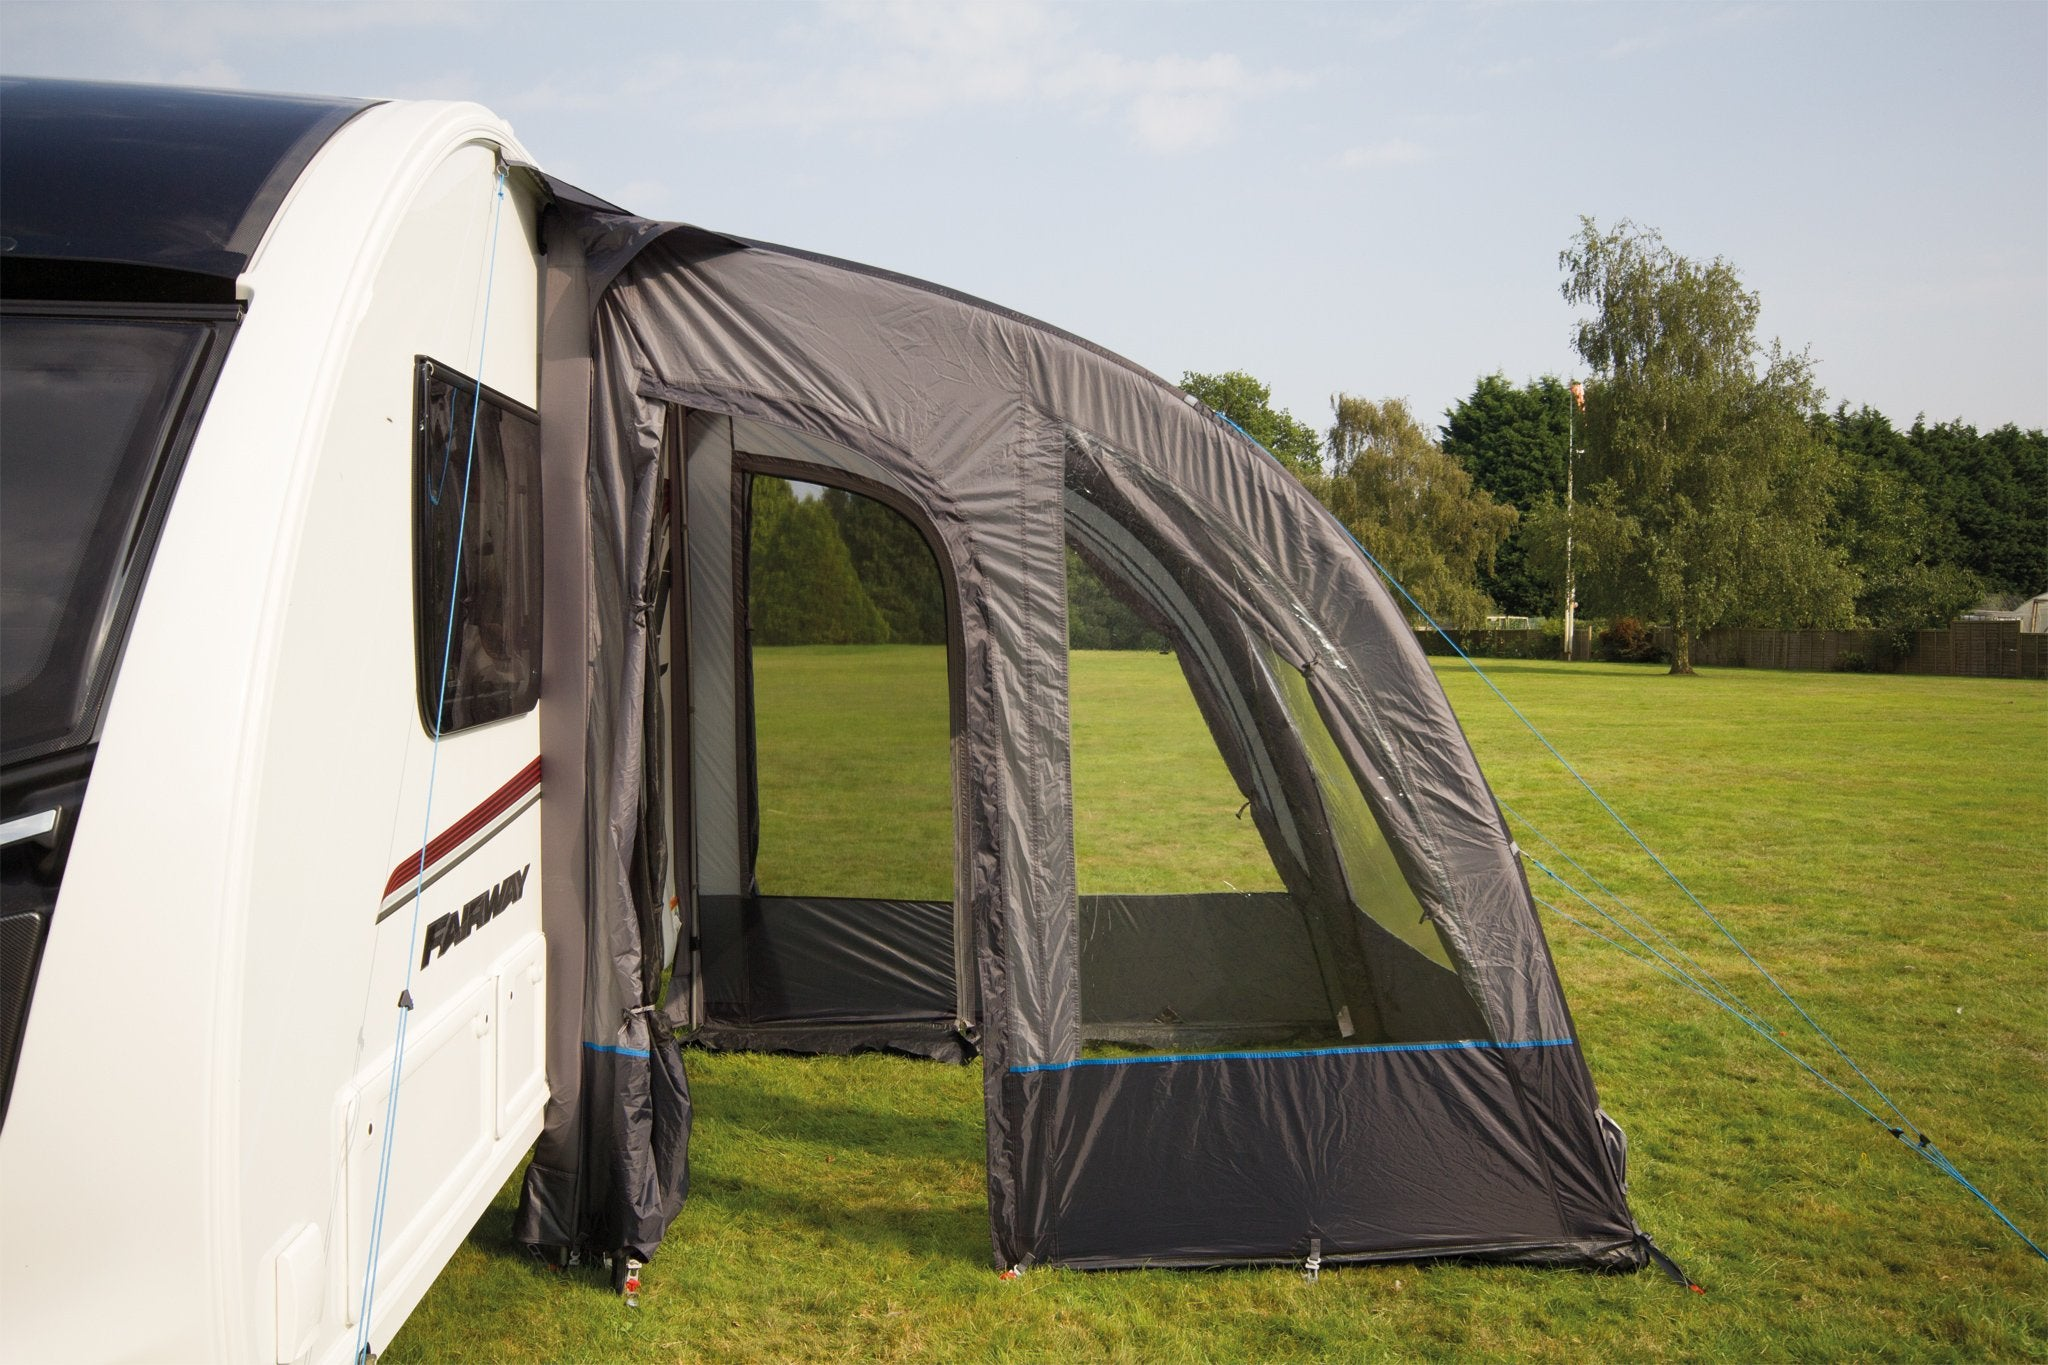 Westfield Lynx 240 Caravan Air Porch Awning - Capital Outdoors